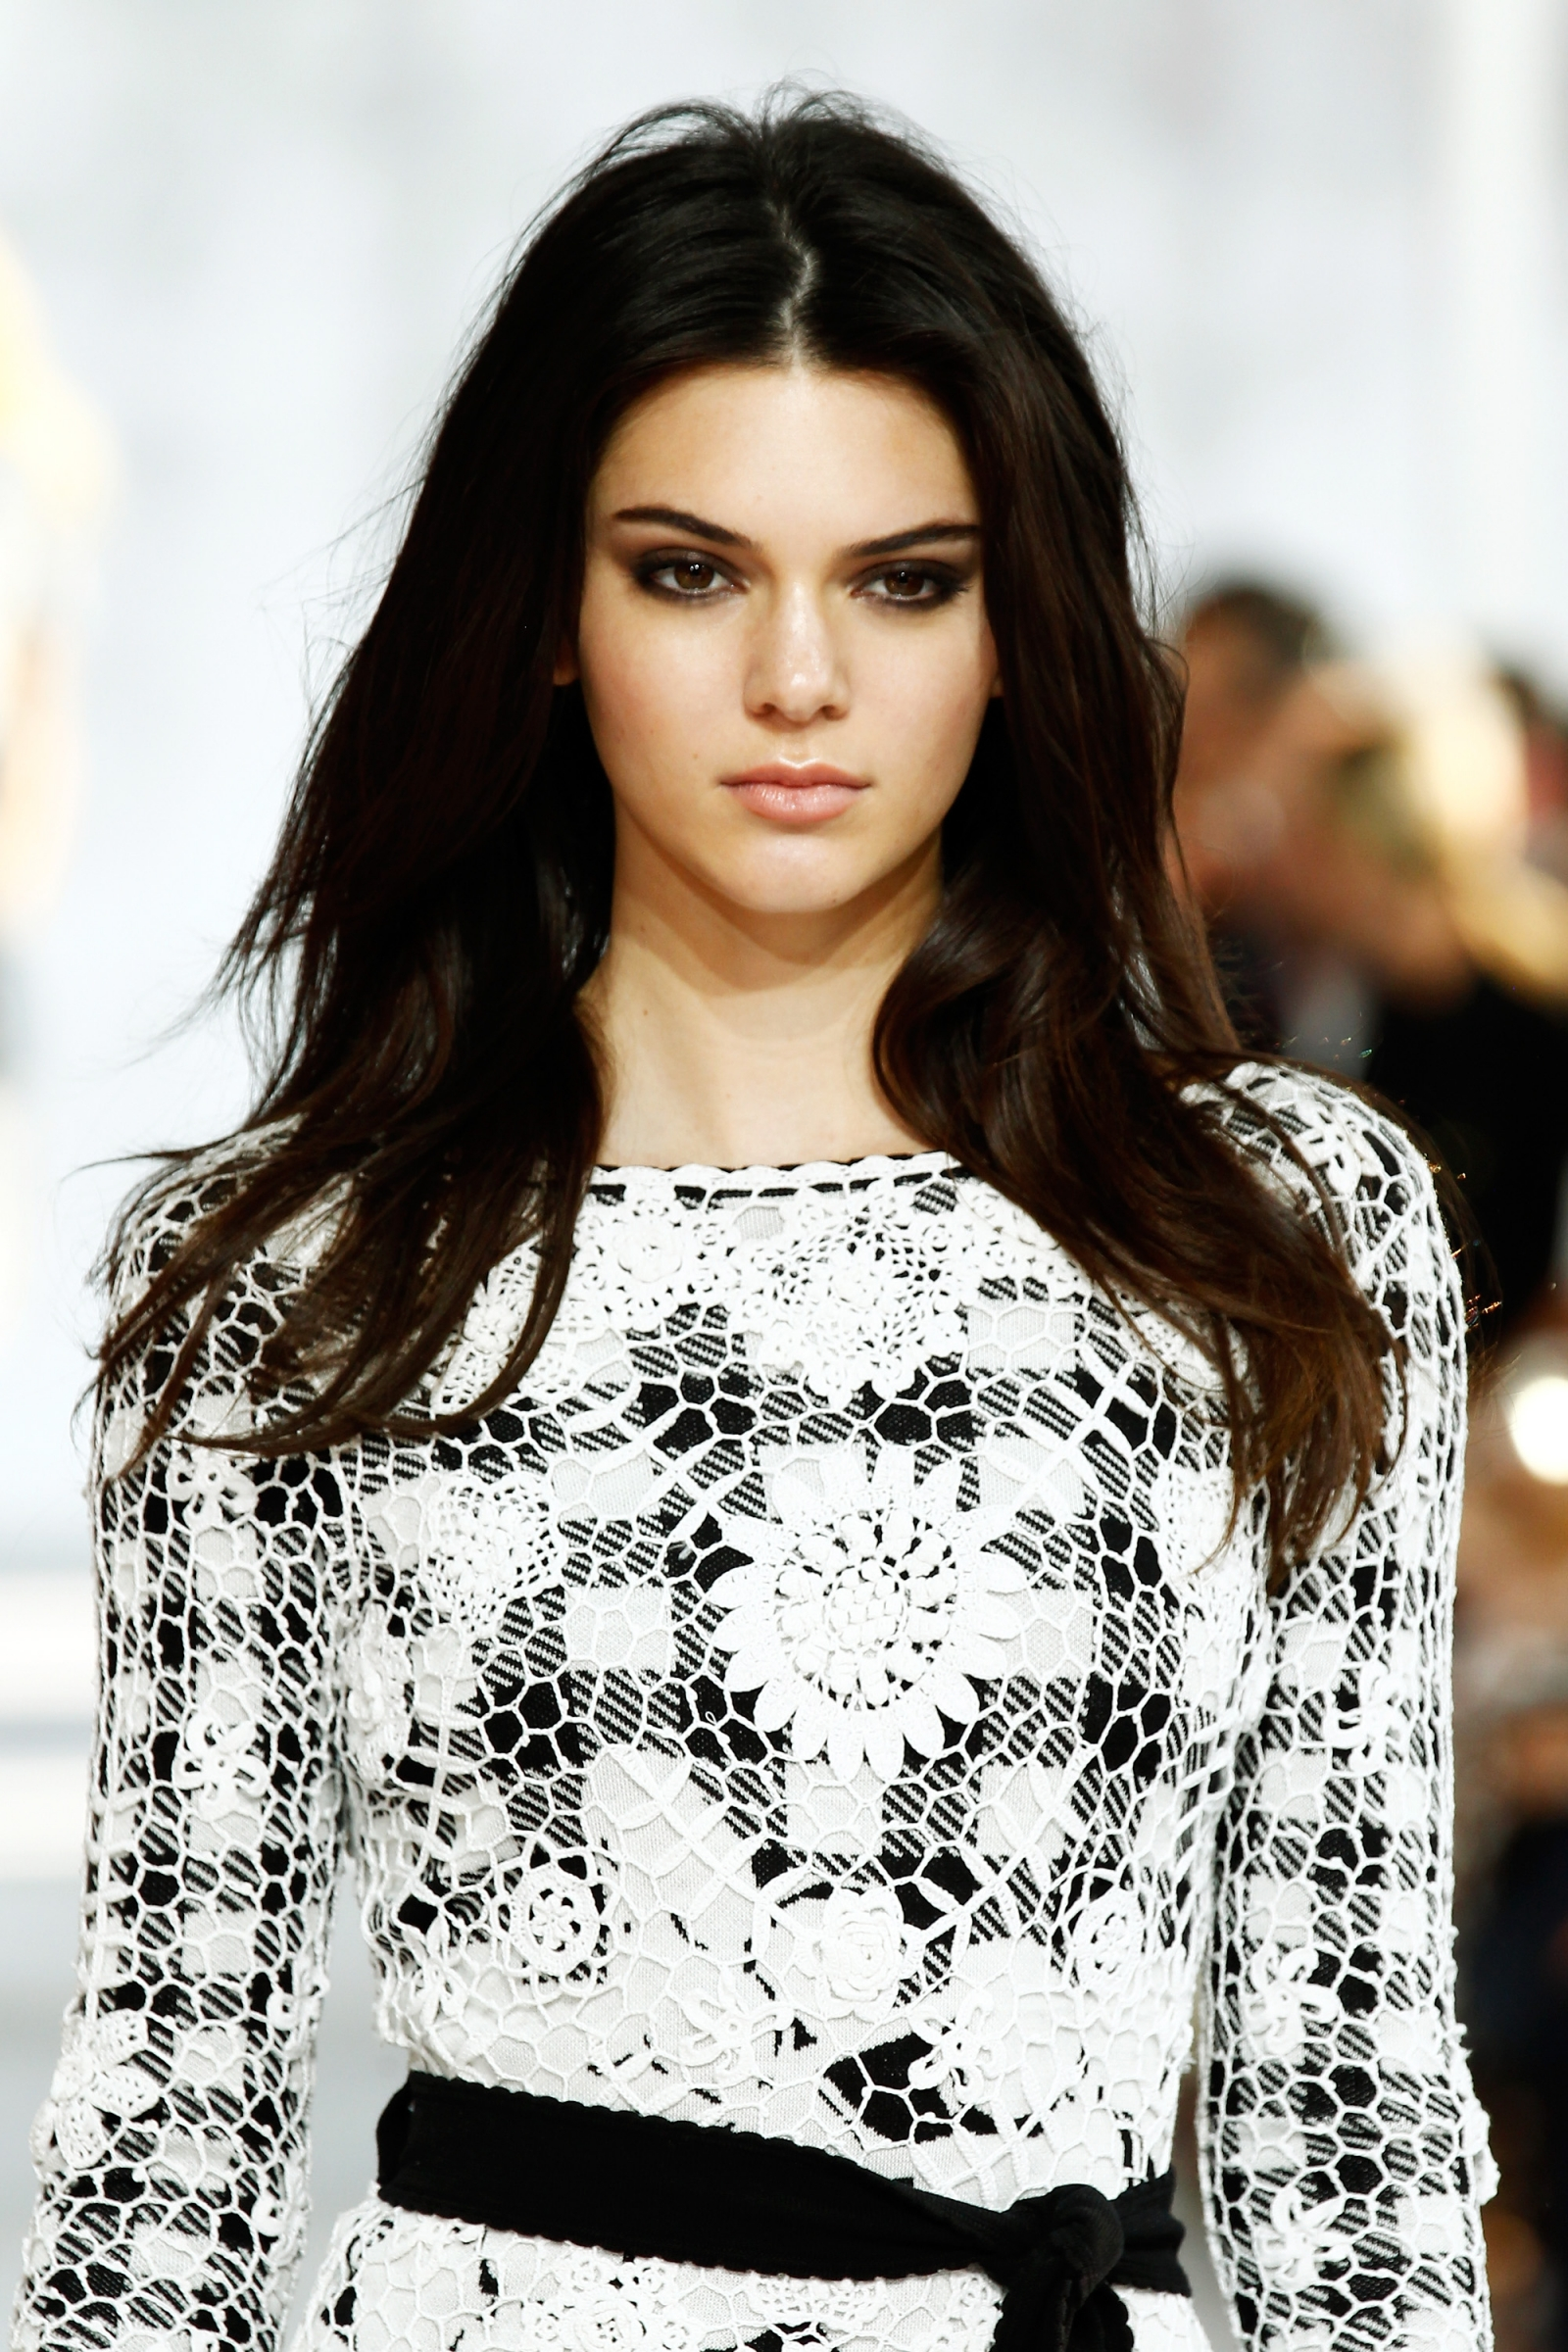 Model Kendall Jenner poses nude